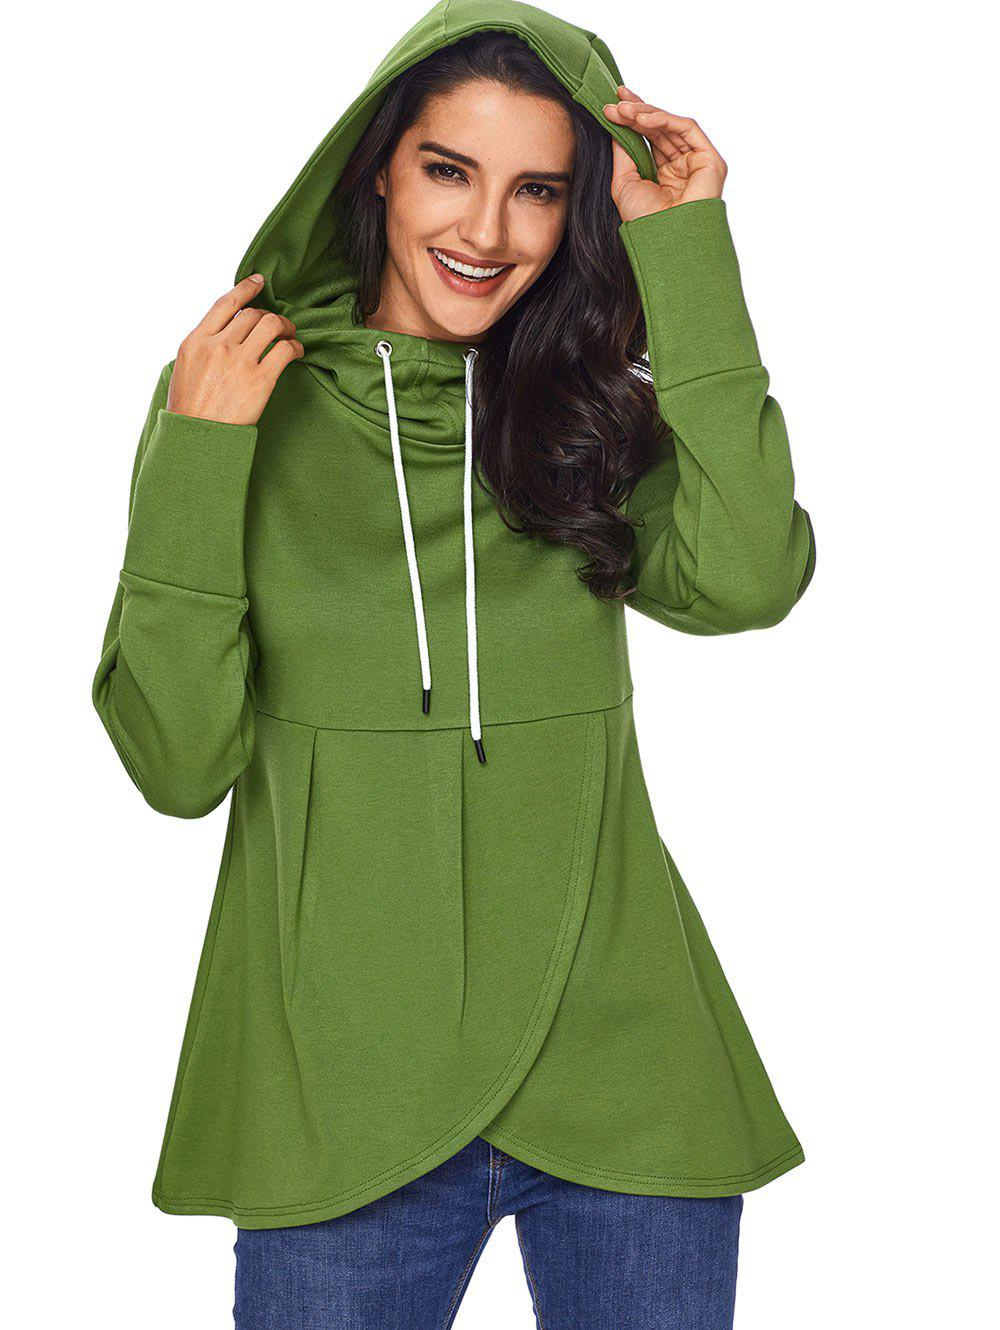 Overlap Pullover Drawstring Hoodie - GREEN 2XL